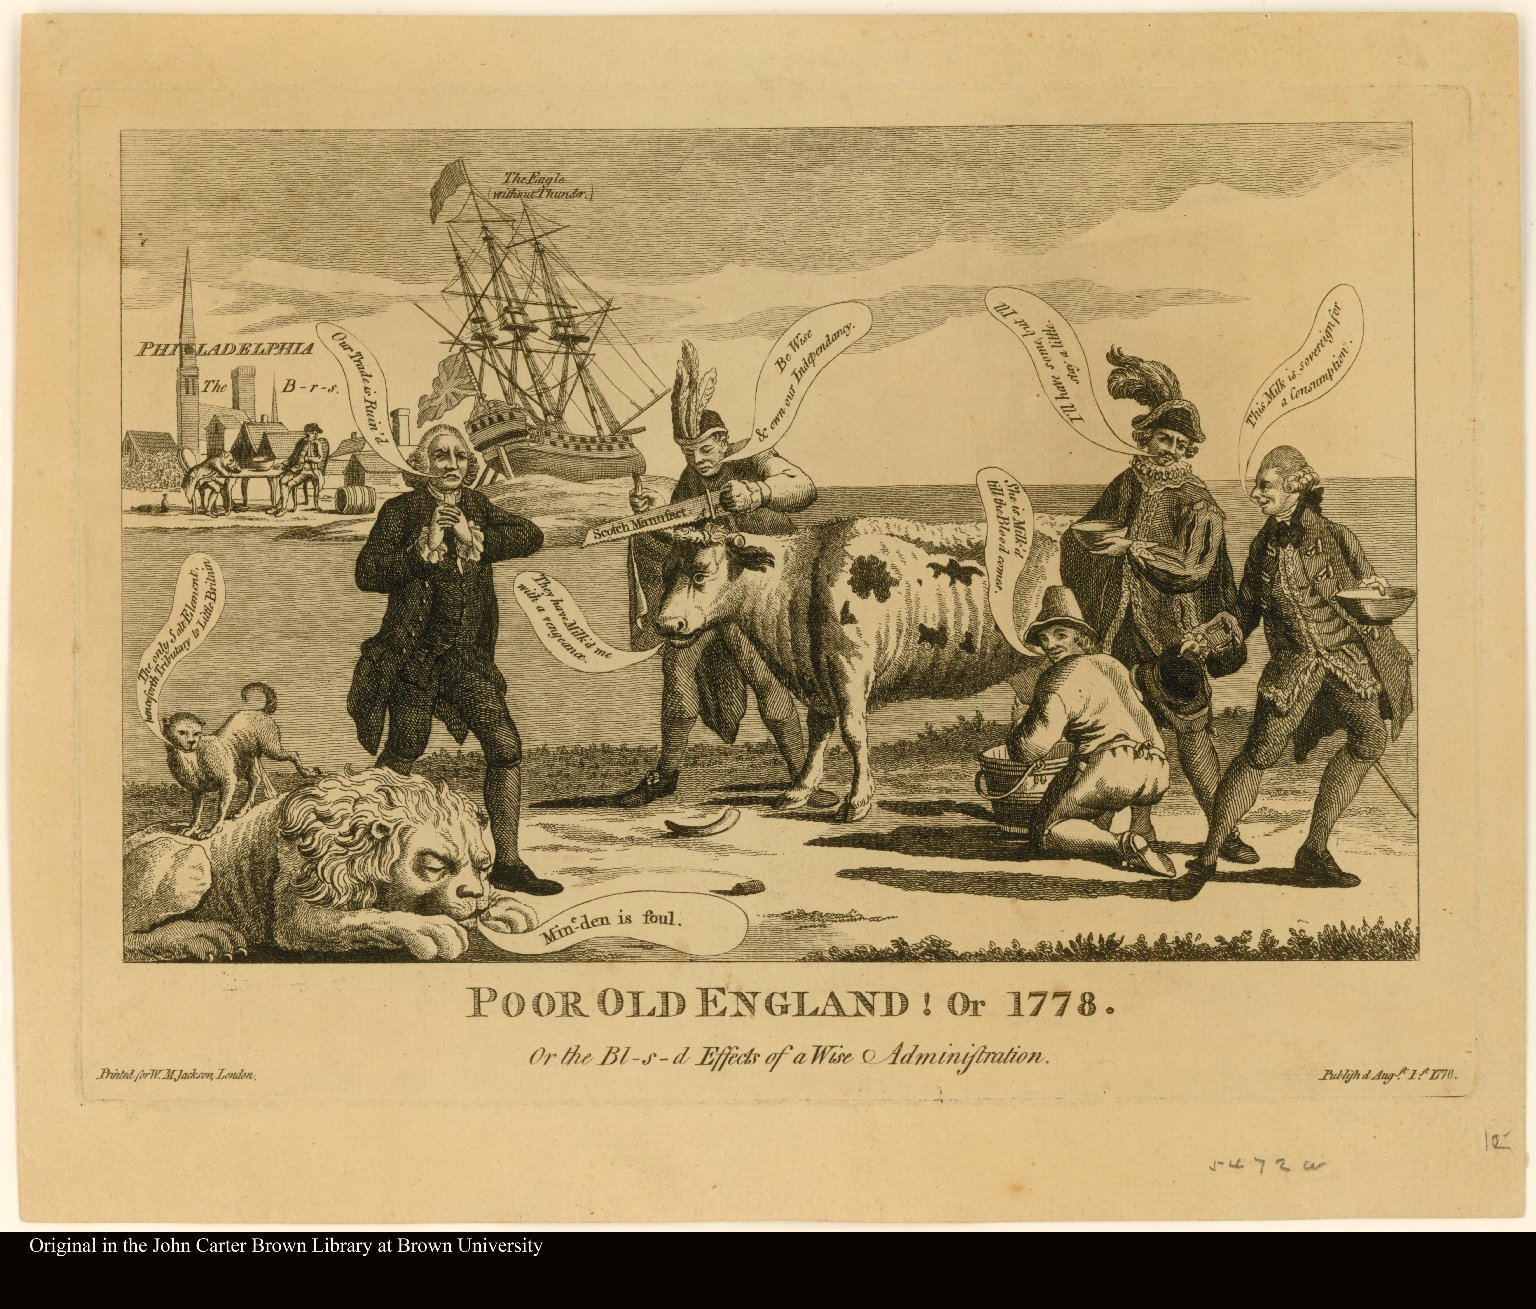 POOR OLD ENGLAND! Or 1778. Or the Bl-s-ed Effects of a Wise Administration